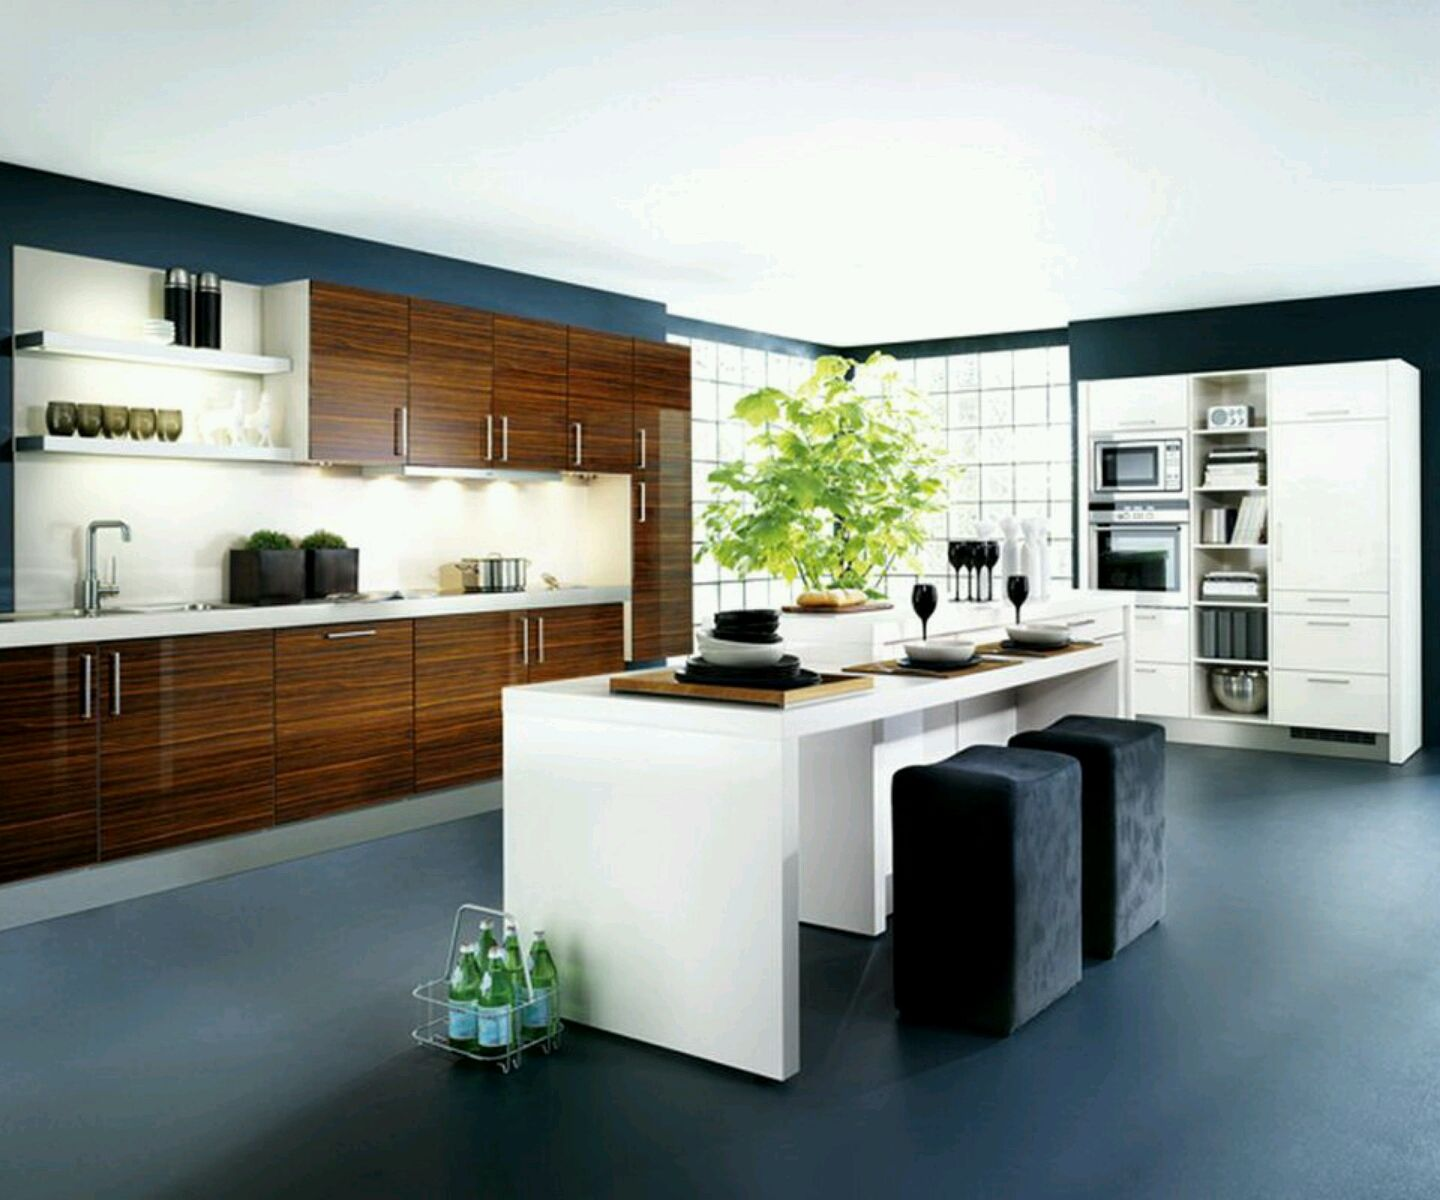 kitchen designs | New home designs latest.: Kitchen cabinets designs ...